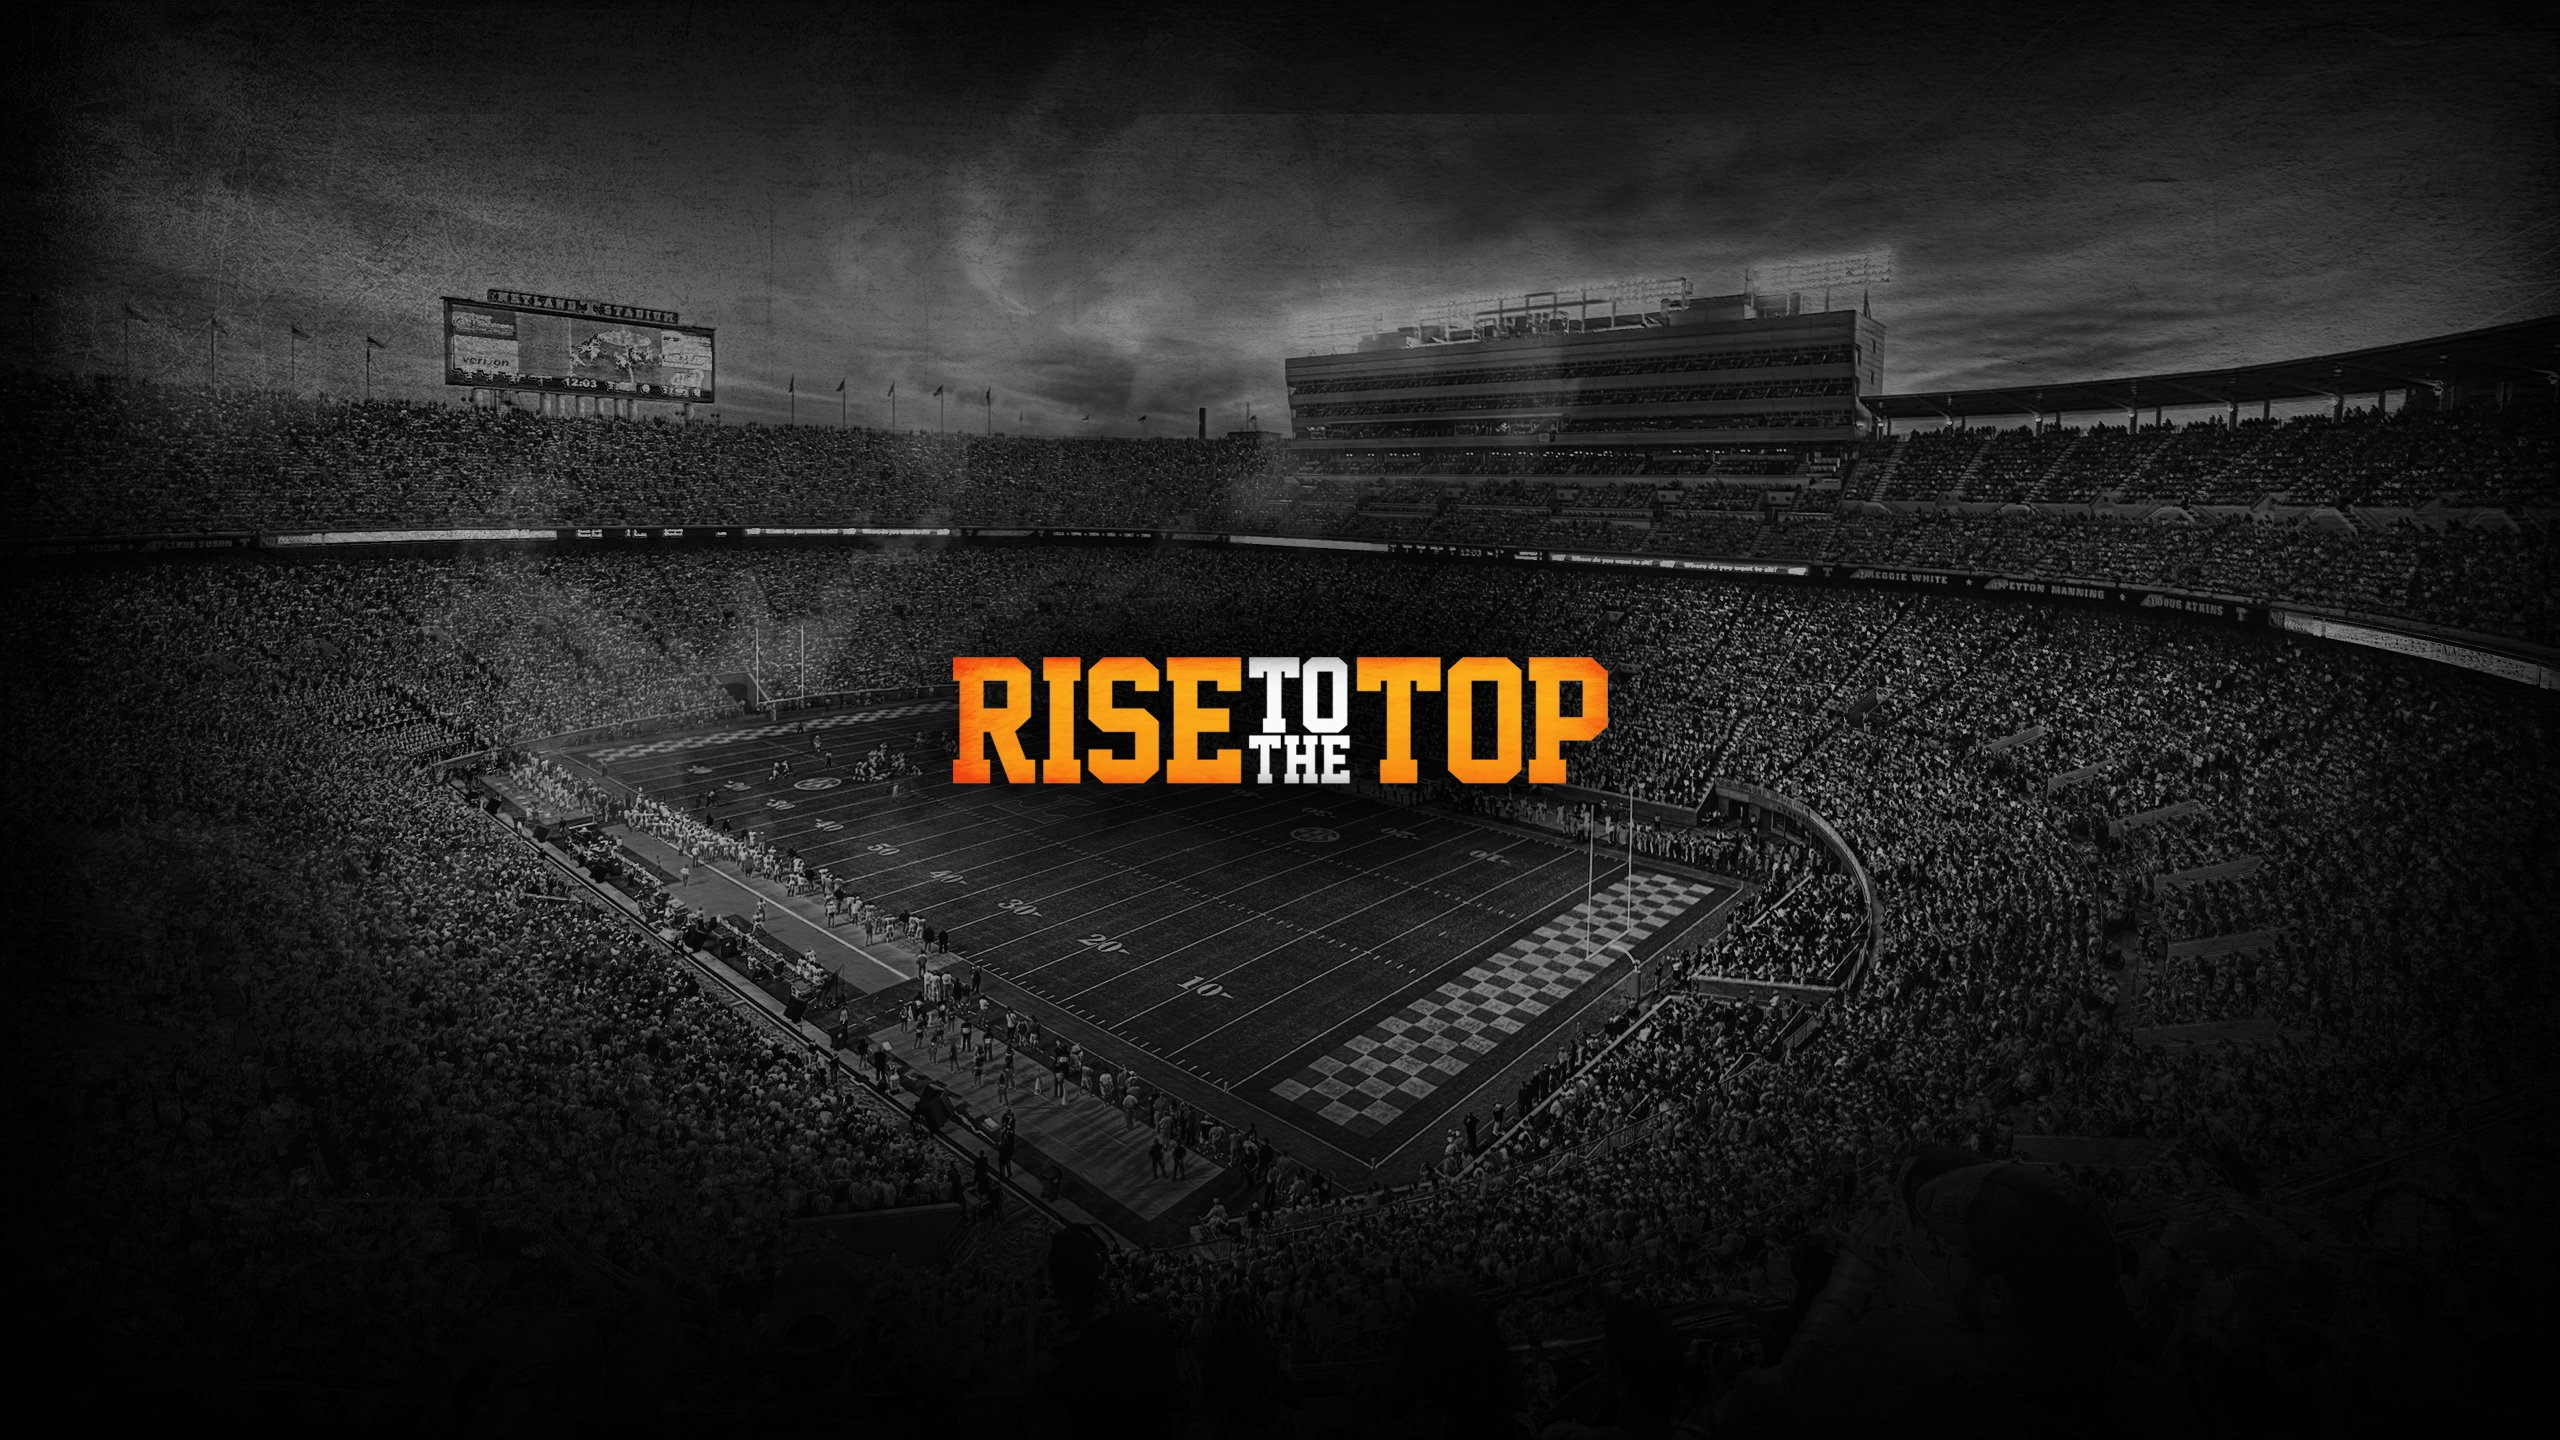 Tennessee Vols Desktop Wallpaper